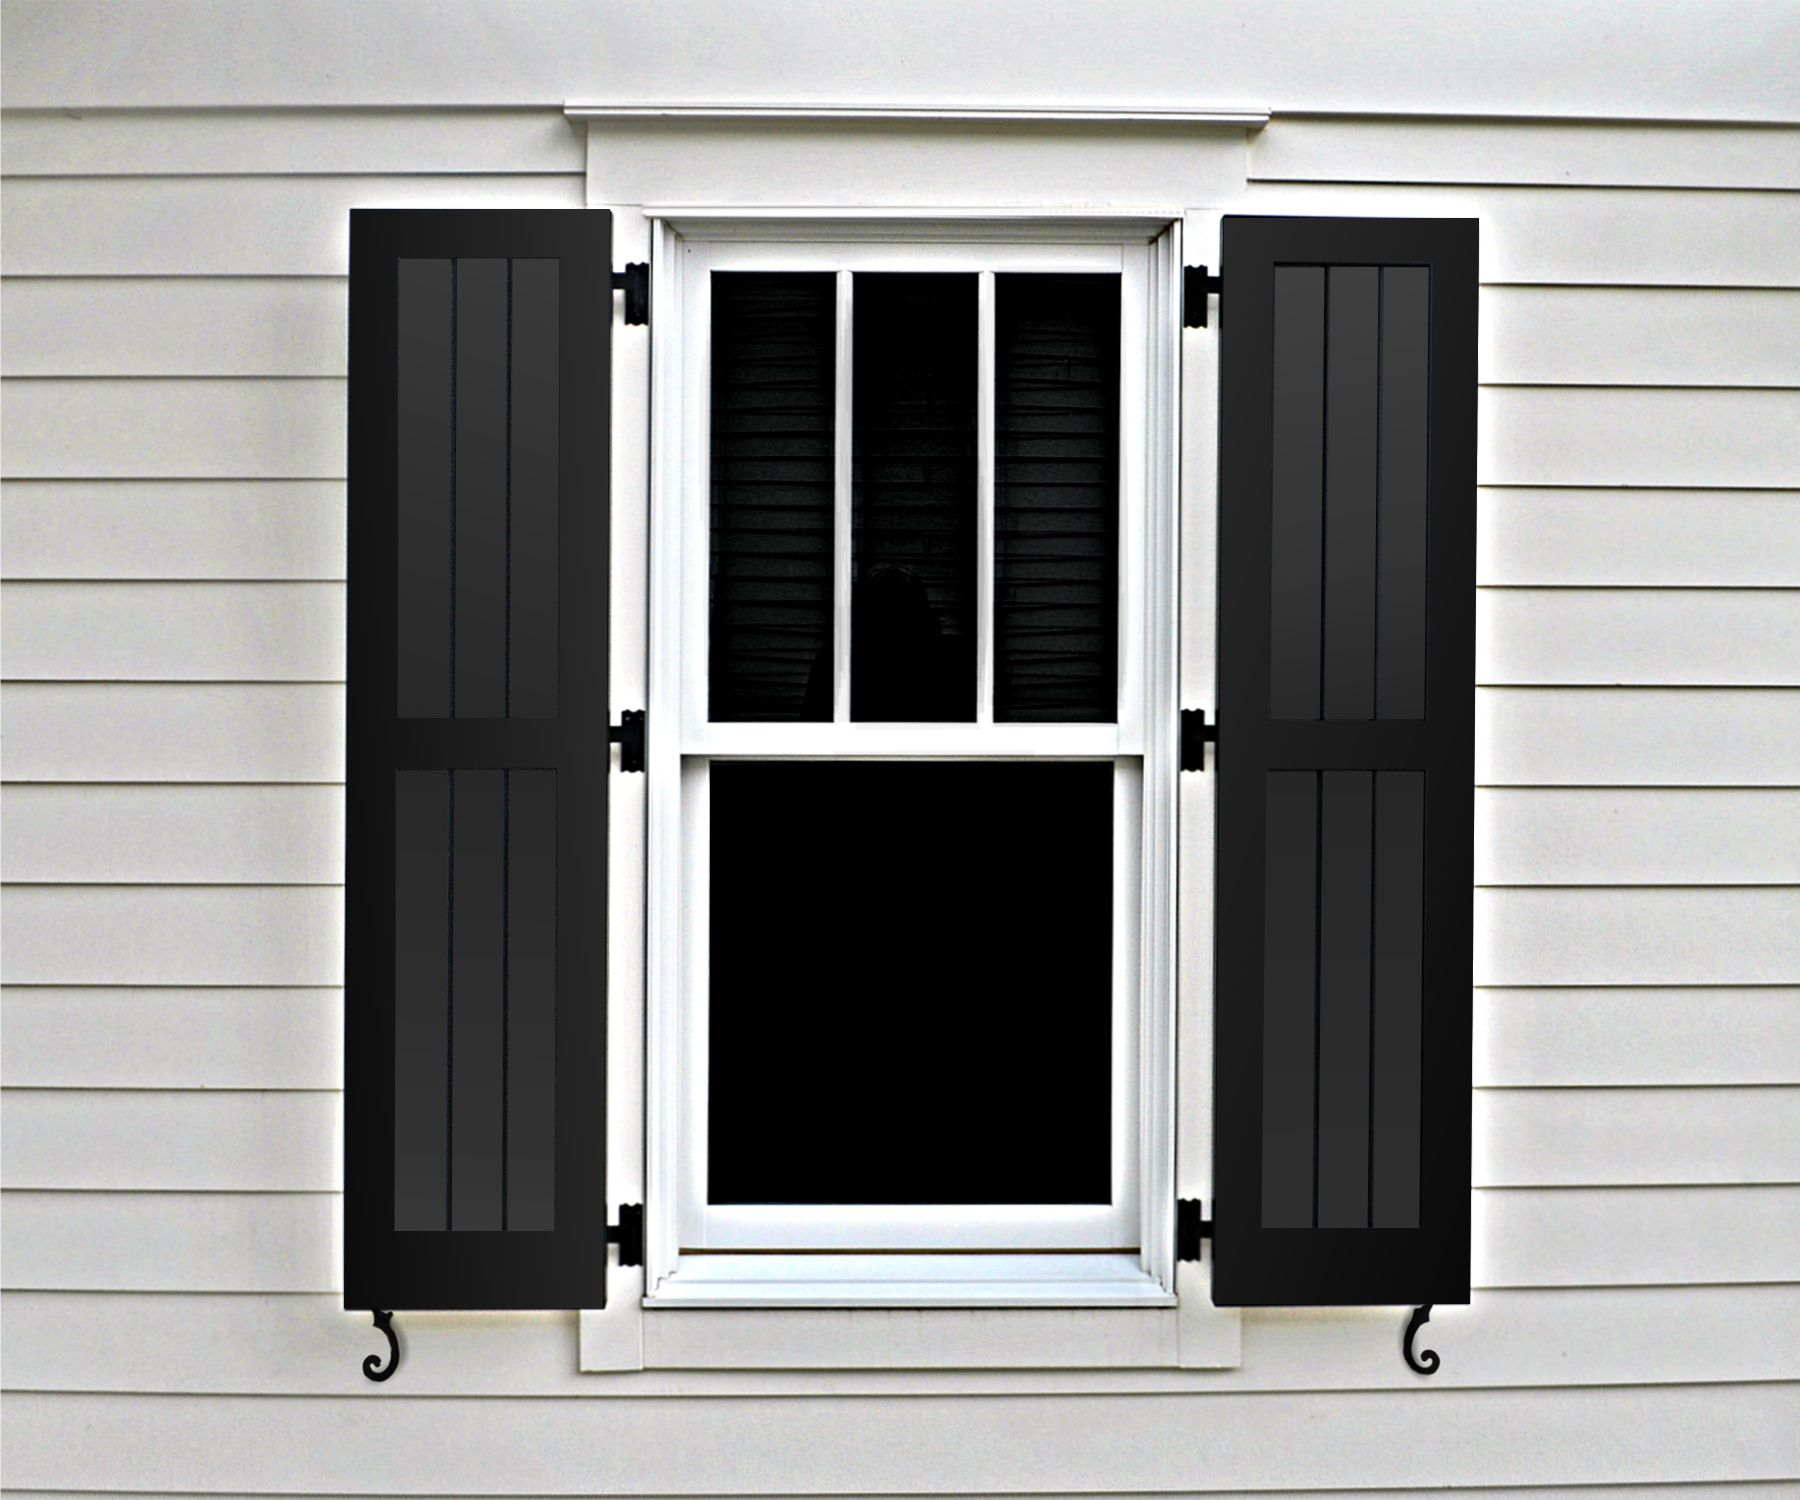 Harmony shutters for windows that are affordable.